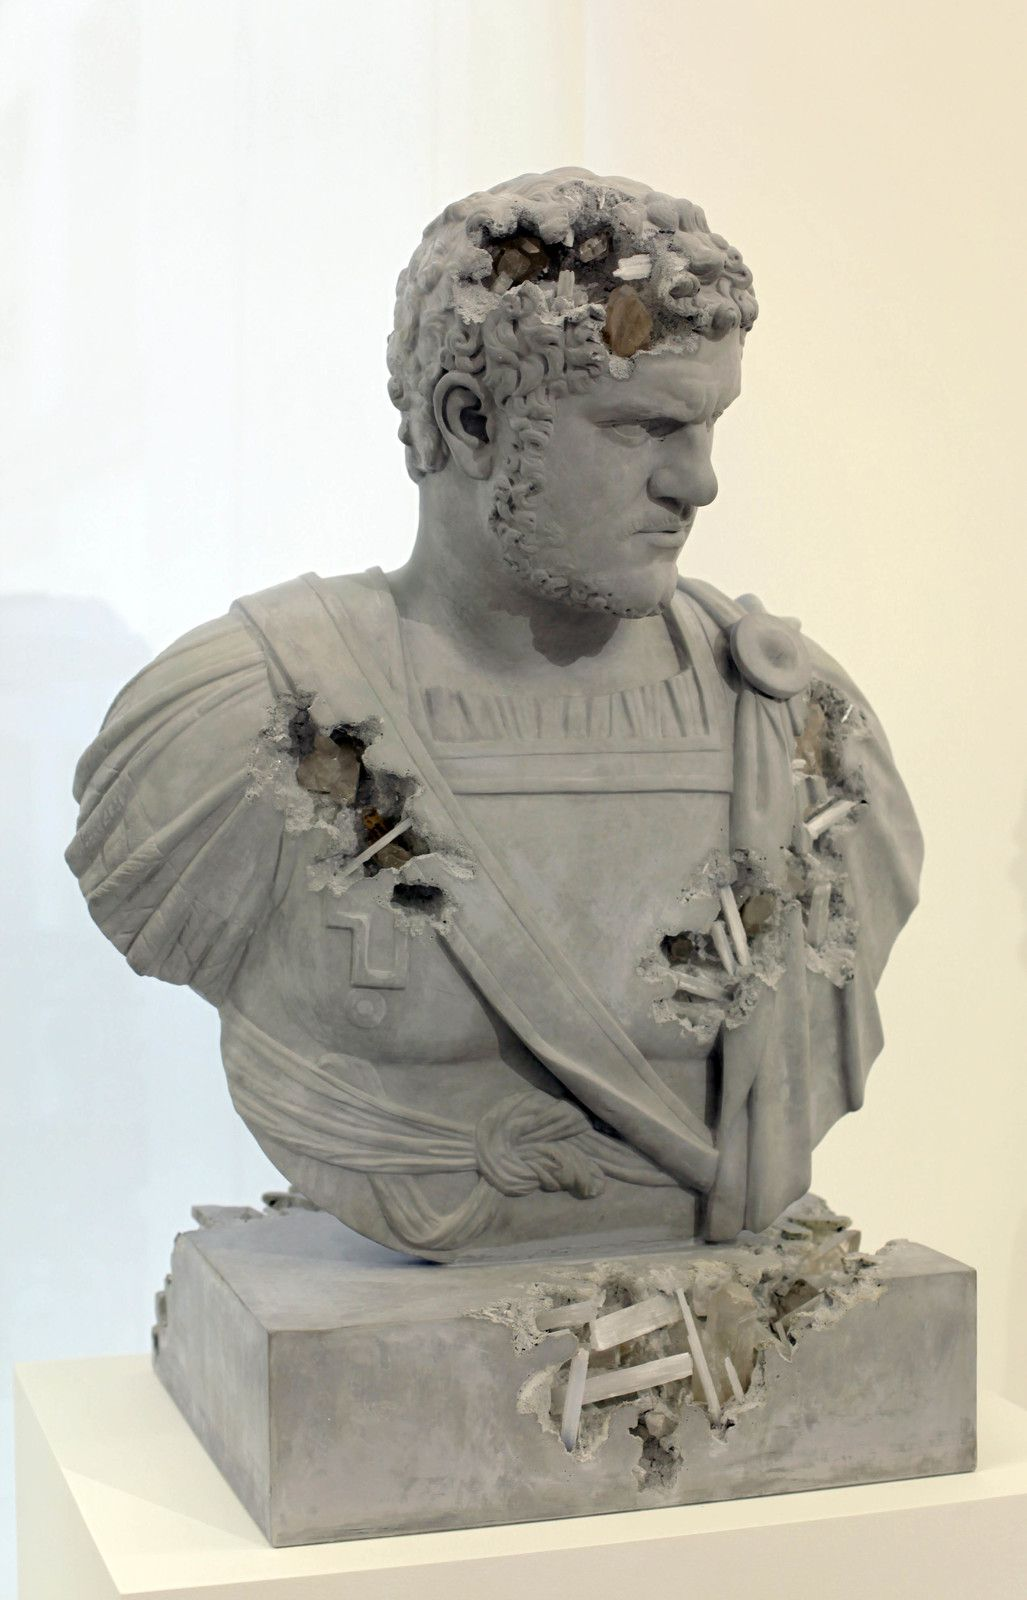 """Grey Selenite Eroded Bust of Caracalla"", 2019 de Daniel ARSHAM - Courtesy de l'artiste et la galerie Perrotin © Photo Éric Simon"